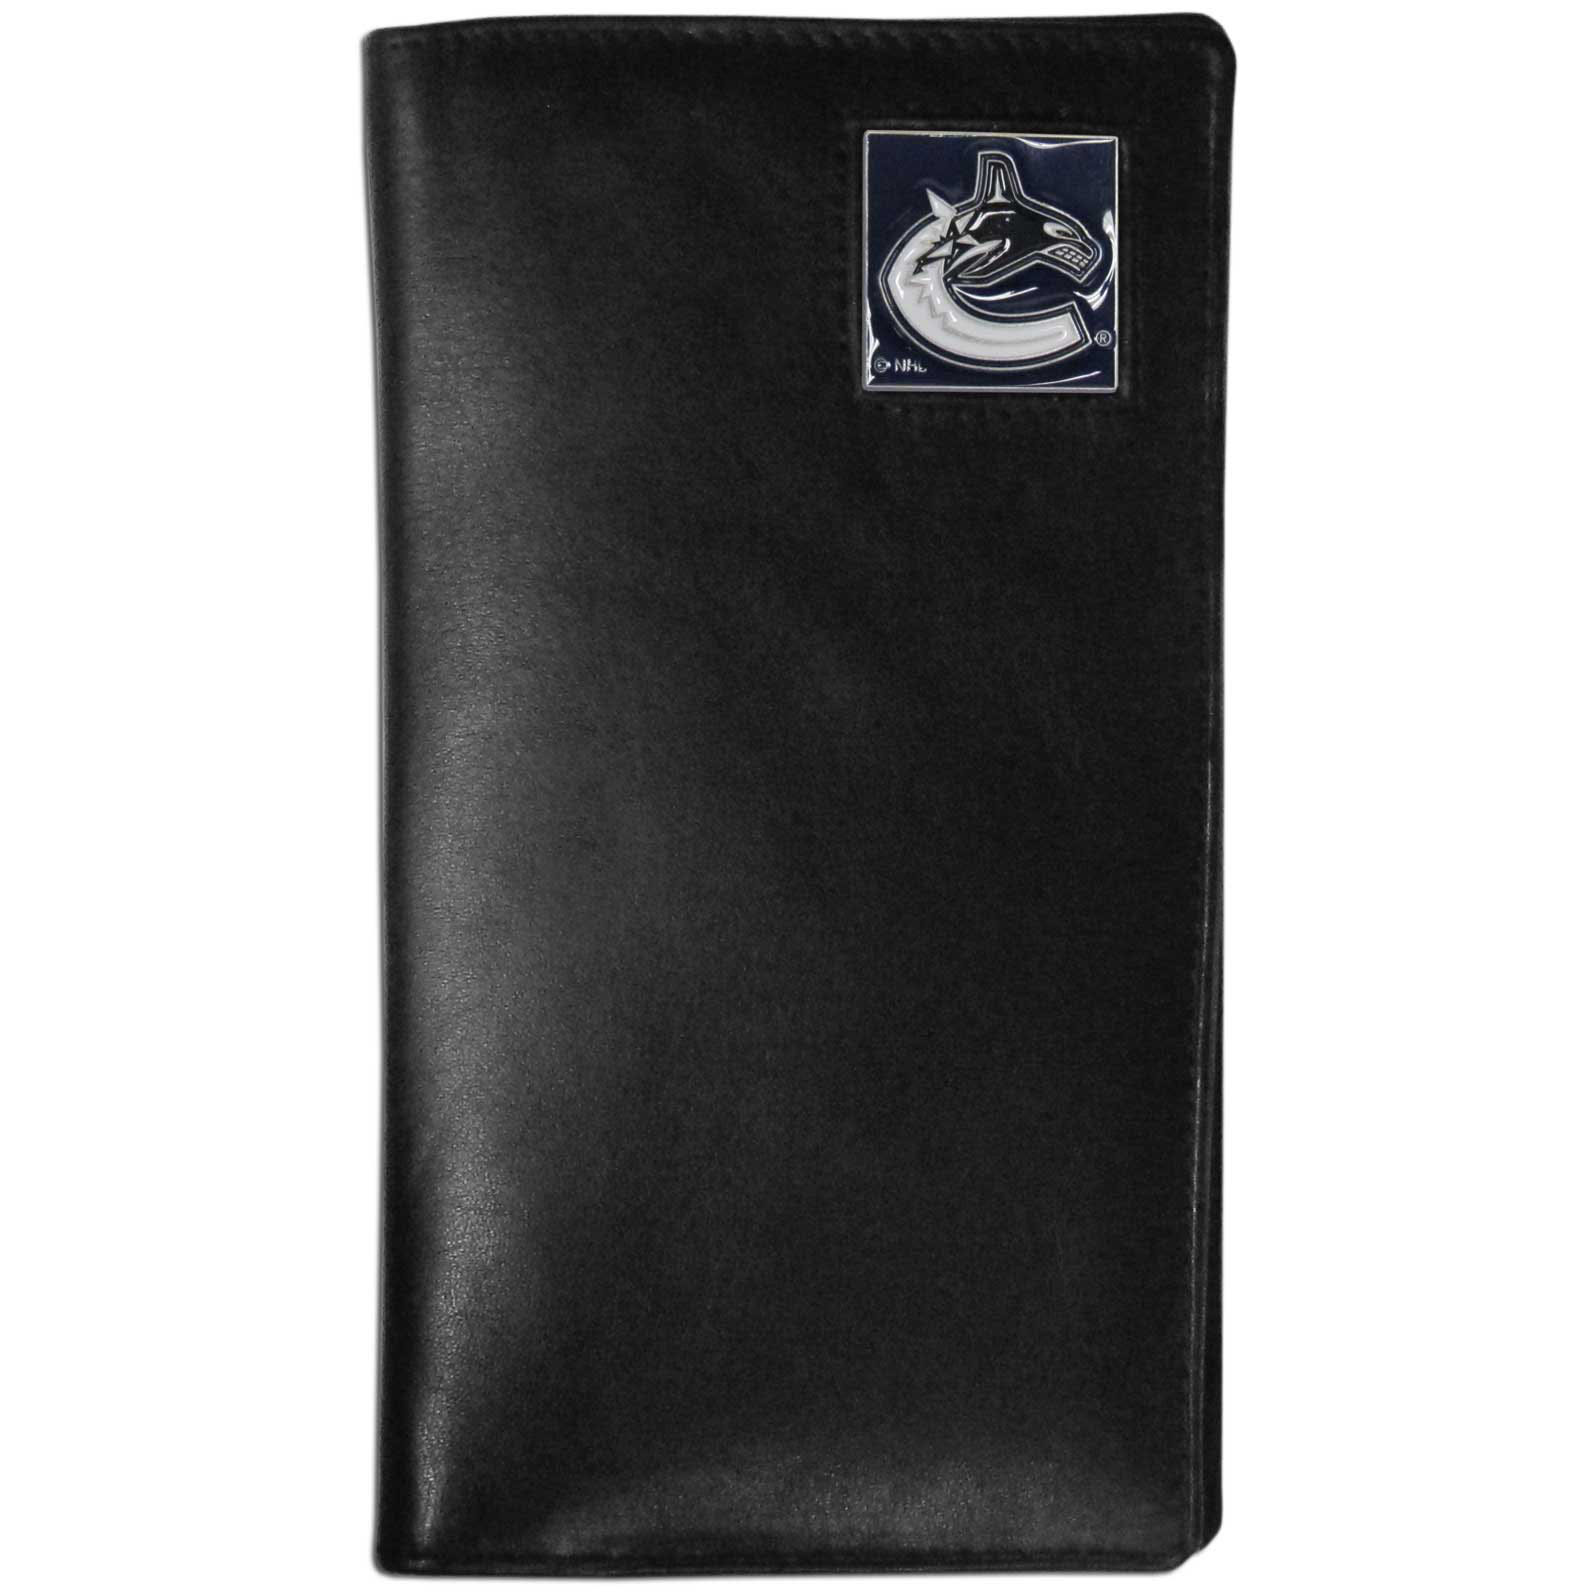 Vancouver Canucks Tall Leather Wallet - This officially licensed Vancouver Canucks tall leather wallet cover is made of high quality leather with a fully cast metal Vancouver Canucks emblem with enameled Vancouver Canucks color detail. The cover fits both side and top loaded checks and includes a large zippered pocket, windowed ID slot, numerous credit card slots and billfold pocket.